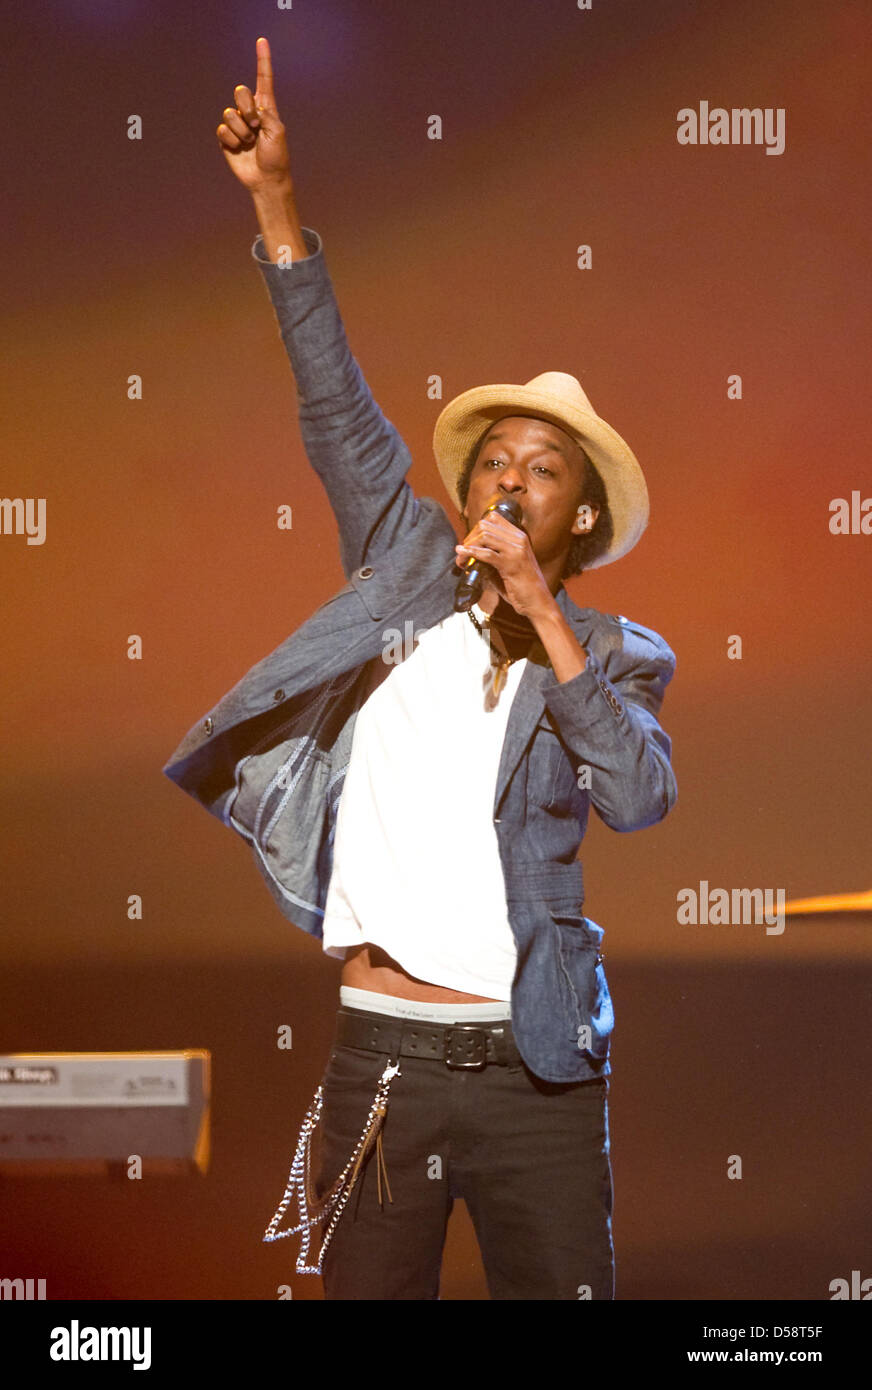 Somali HipHop artist K'Naan performs during the recording of the